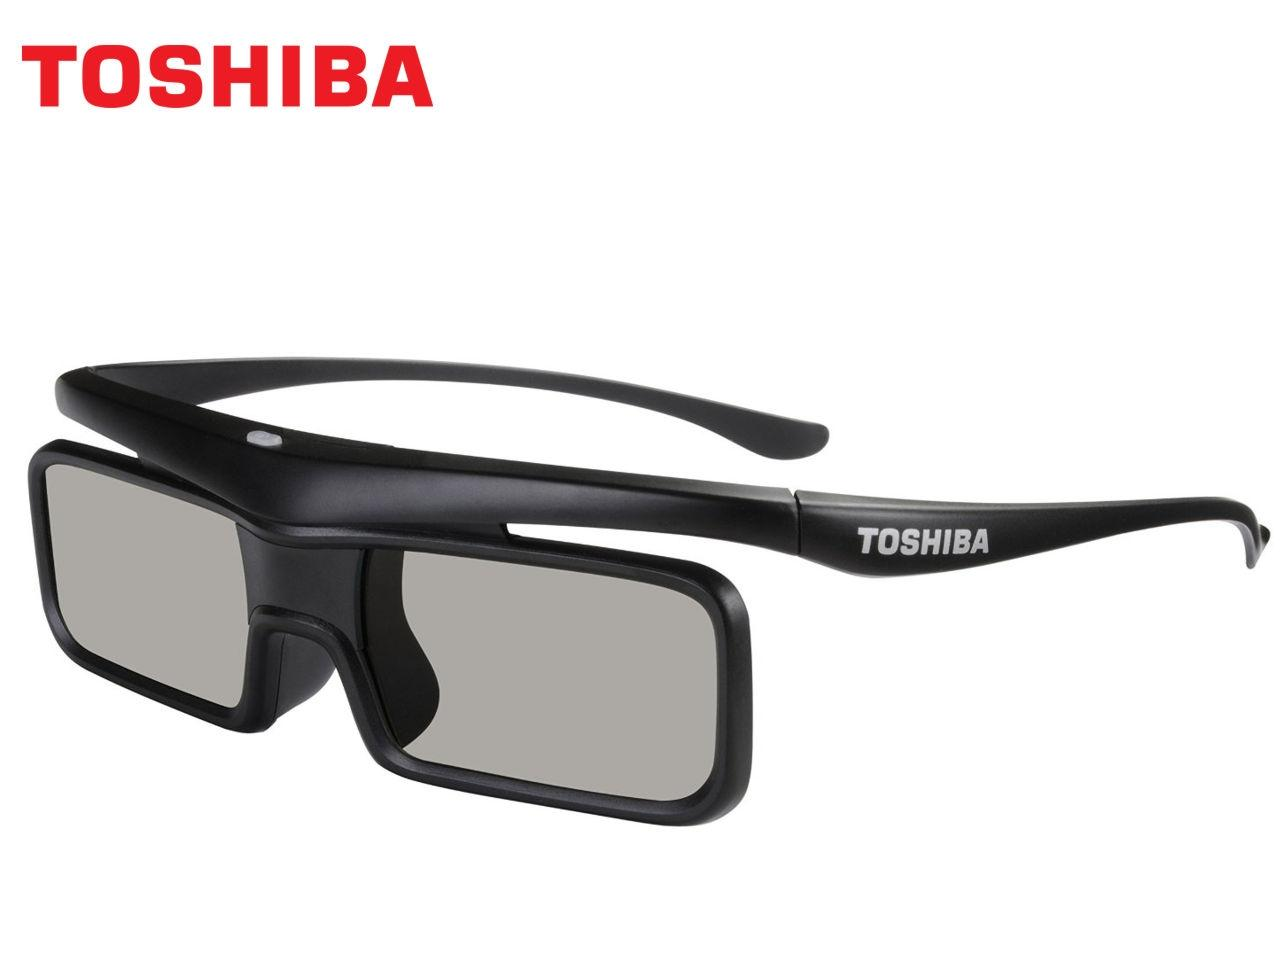 TOSHIBA FPT-AG04G, set 2 ks | CHAT on-line podpora PO-PÁ 8-22.00!!